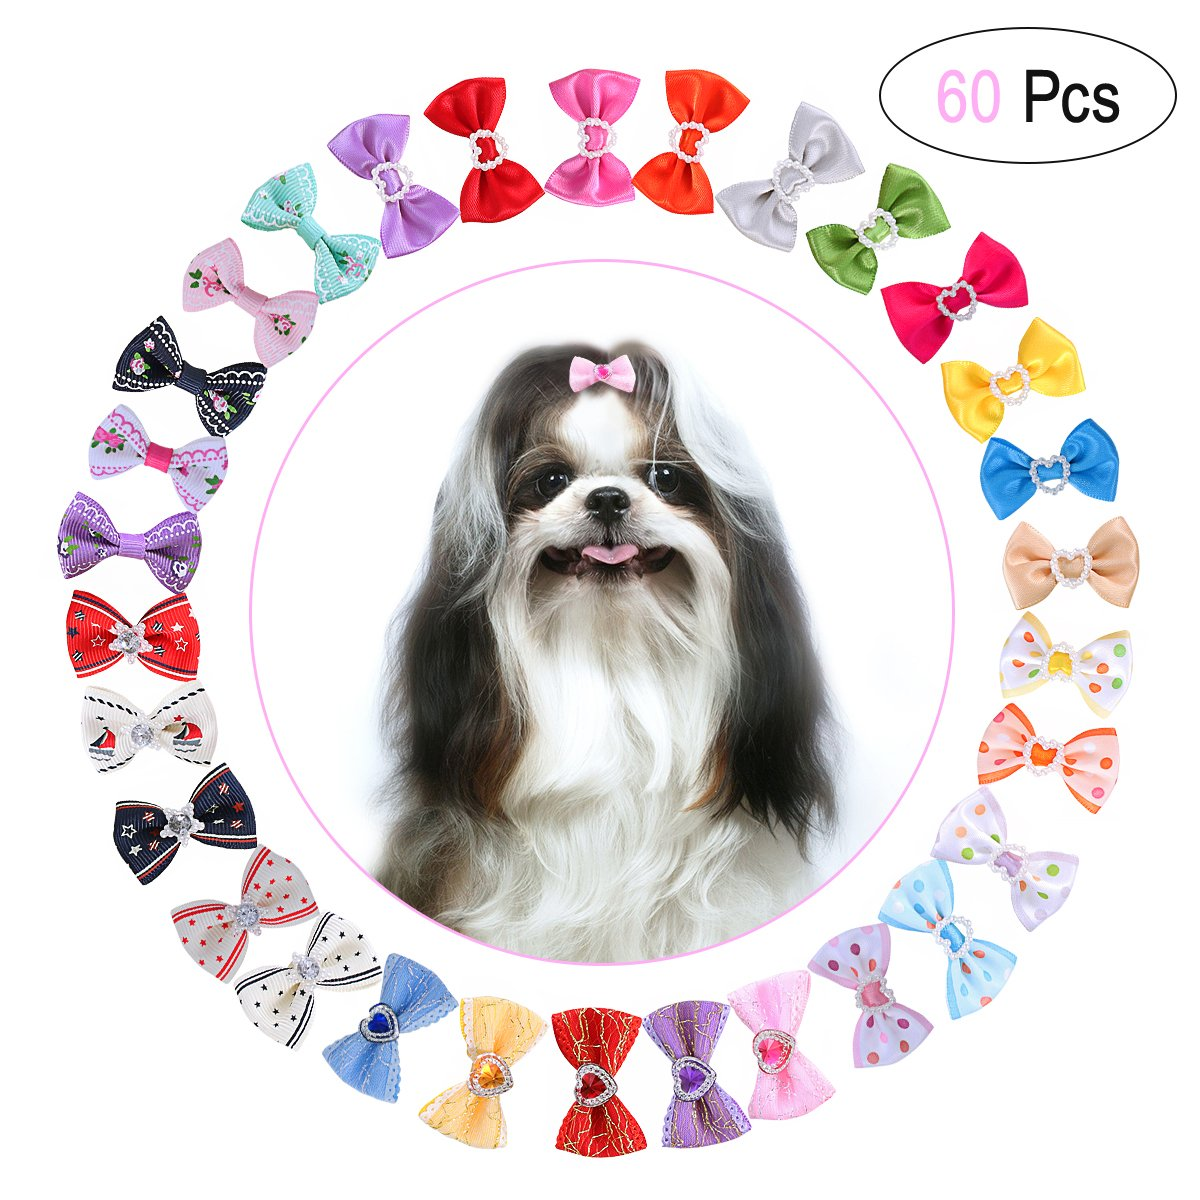 UEETEK 60PCS (30 Paris) Cute Puppy Dog Small Bowknot Hair Bows with Rubber Bands Handmade Hair Accessories Bow Pet Grooming Products (60 Pcs,Cute Patterns)